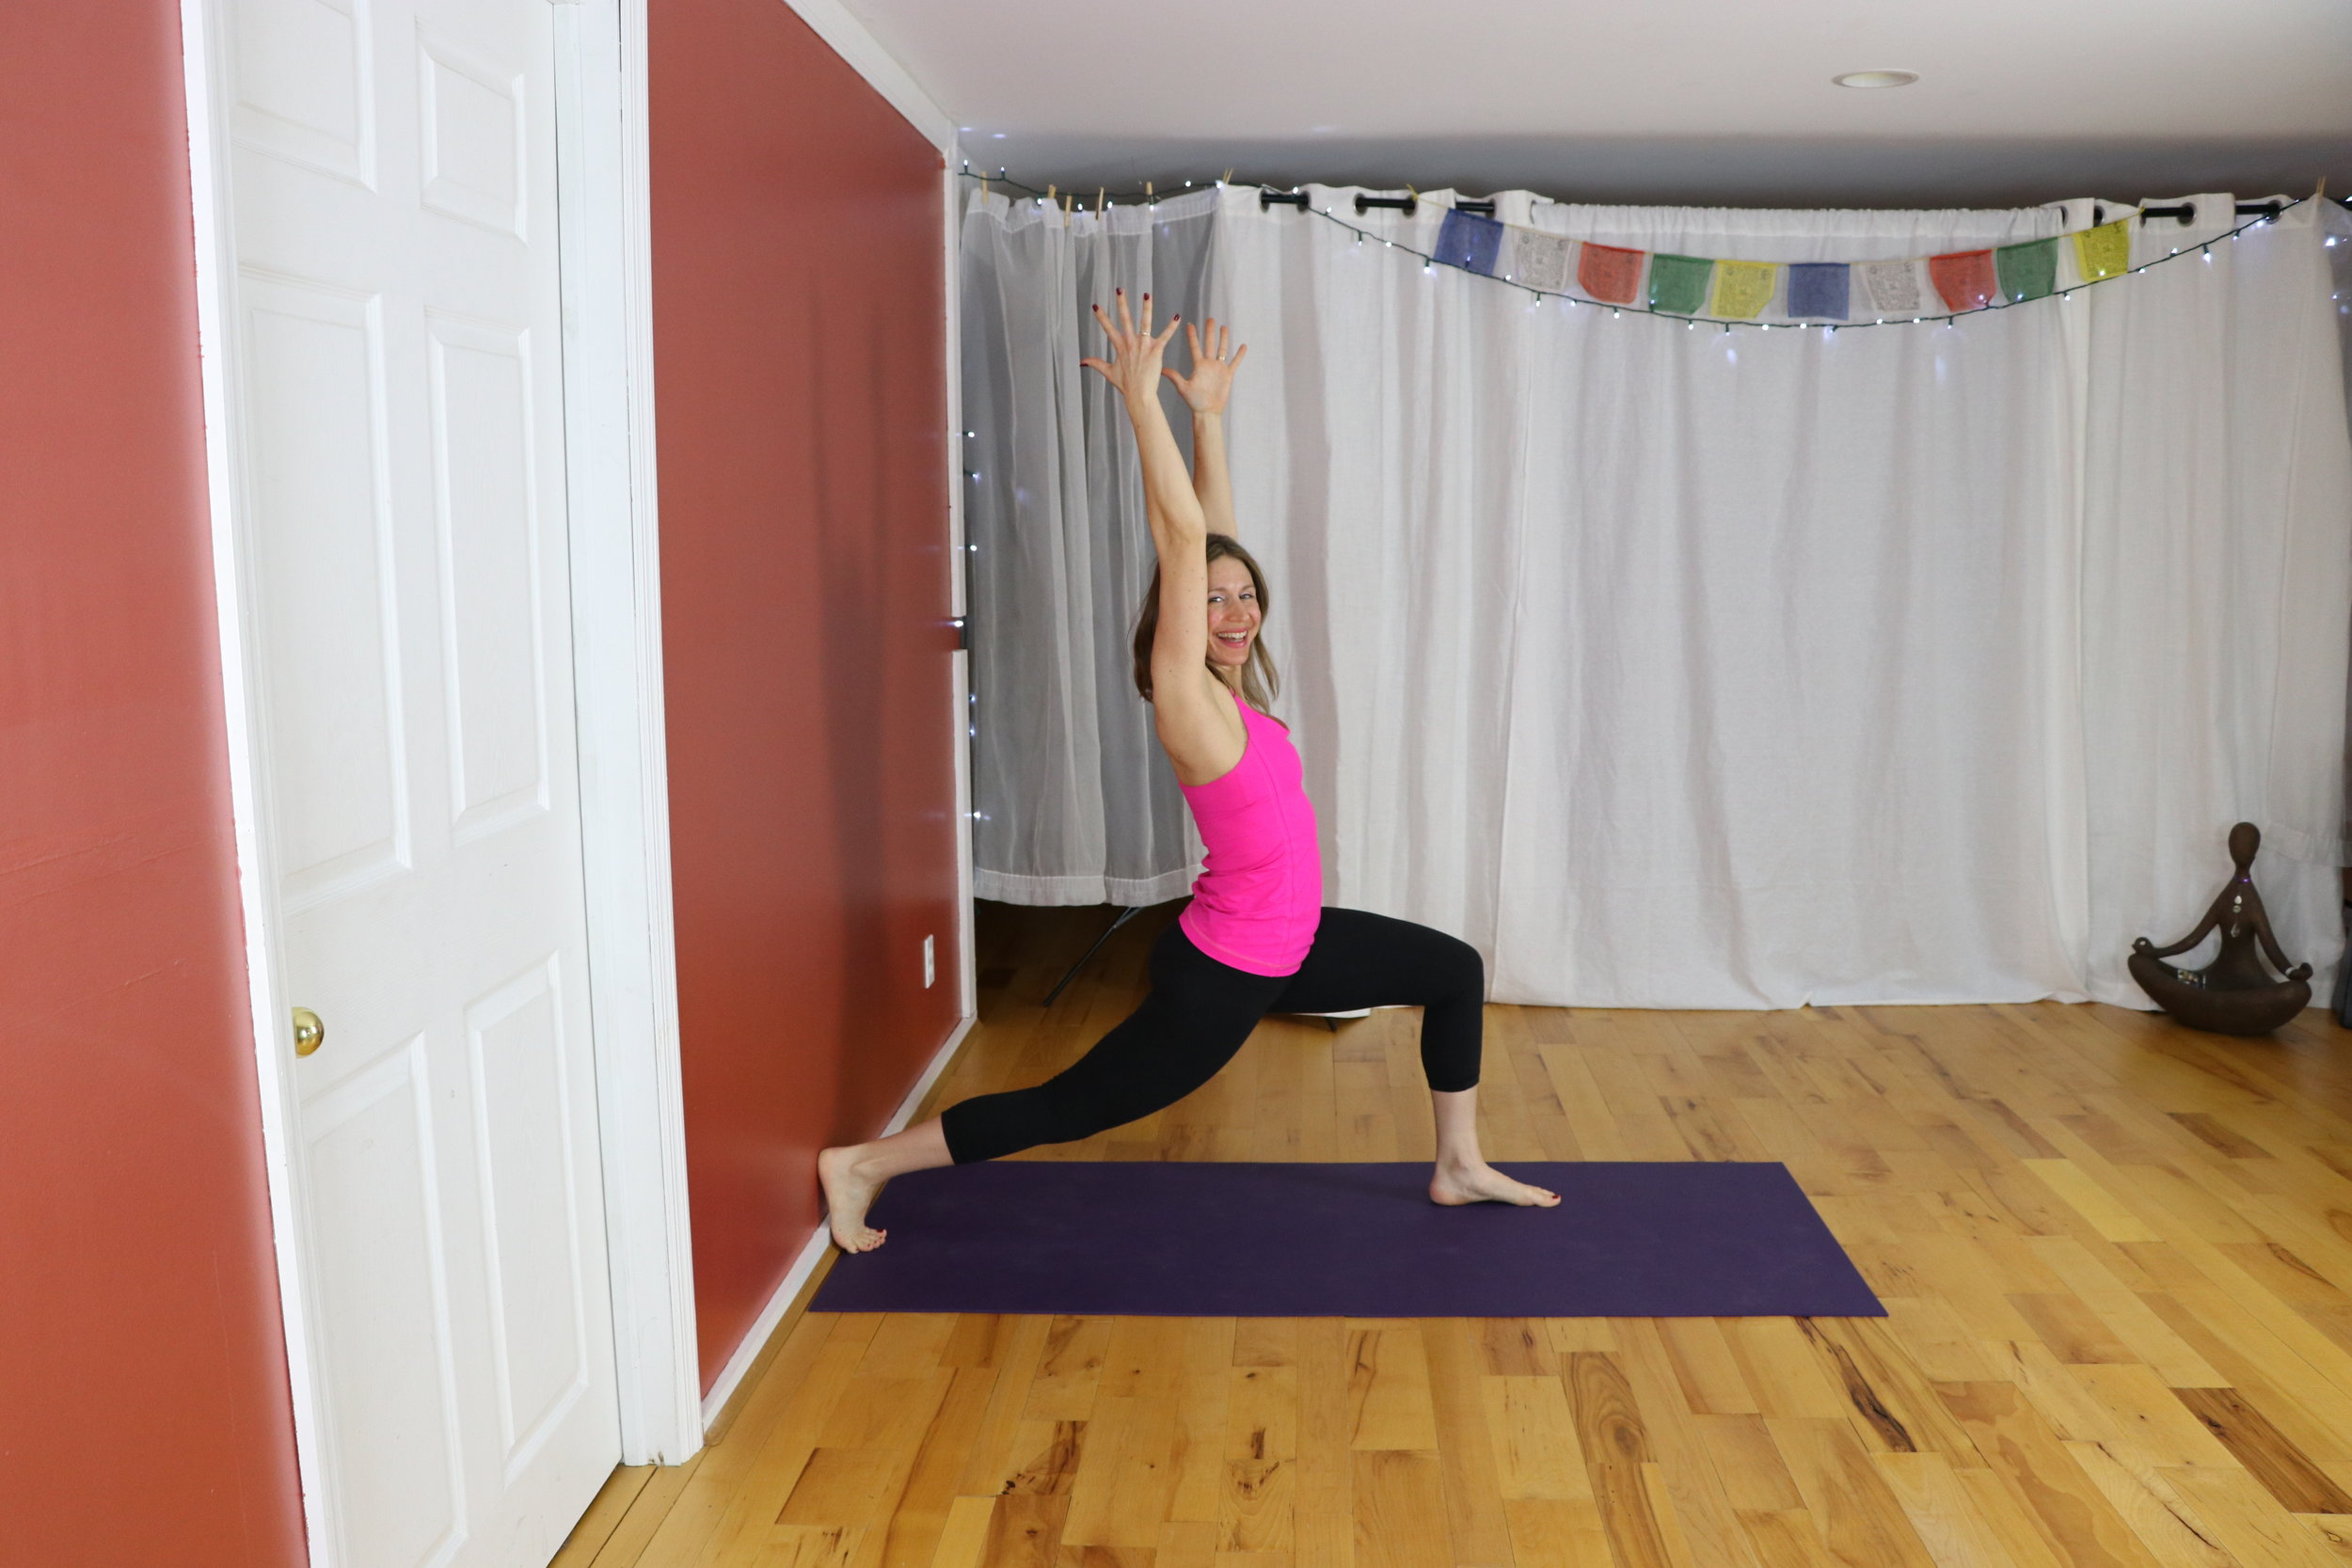 Happy Back Yoga with Irena, Feel better in 15 minutes with 5 simple yoga poses.  www.irenamiller.com